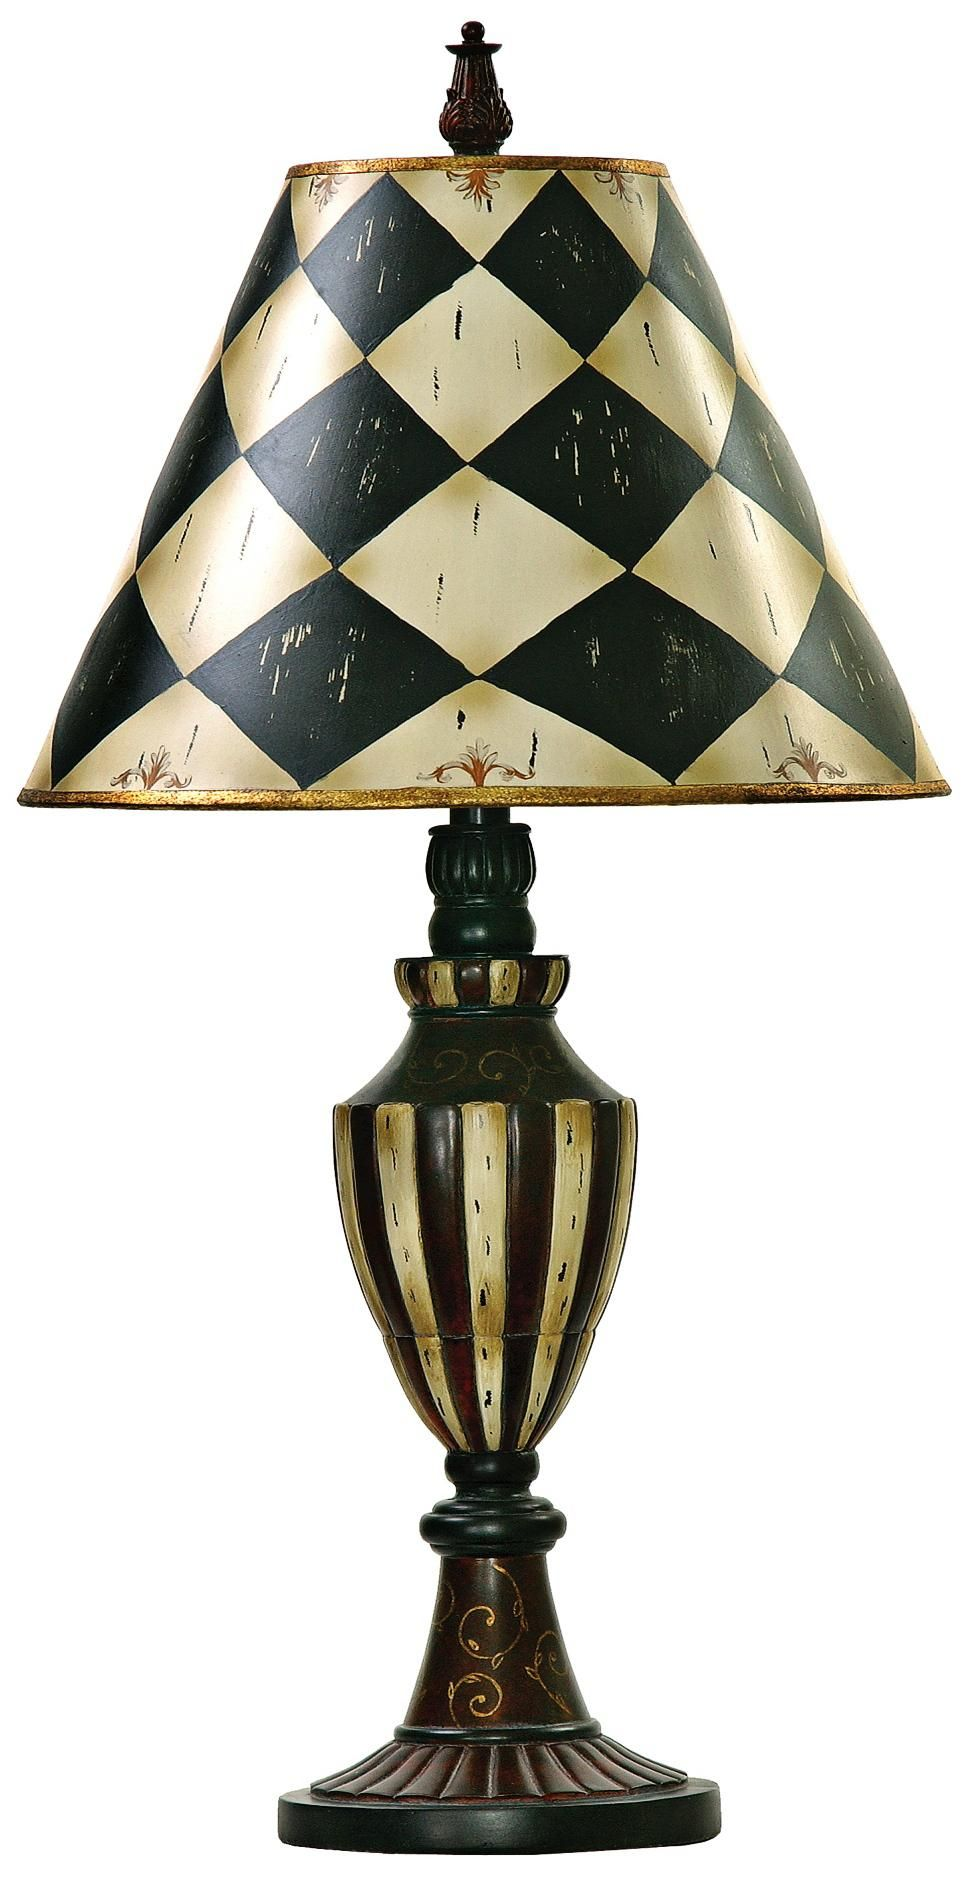 76f74e5a639 Harlequin and Stripe Black and Antique White Urn Table Lamp ...